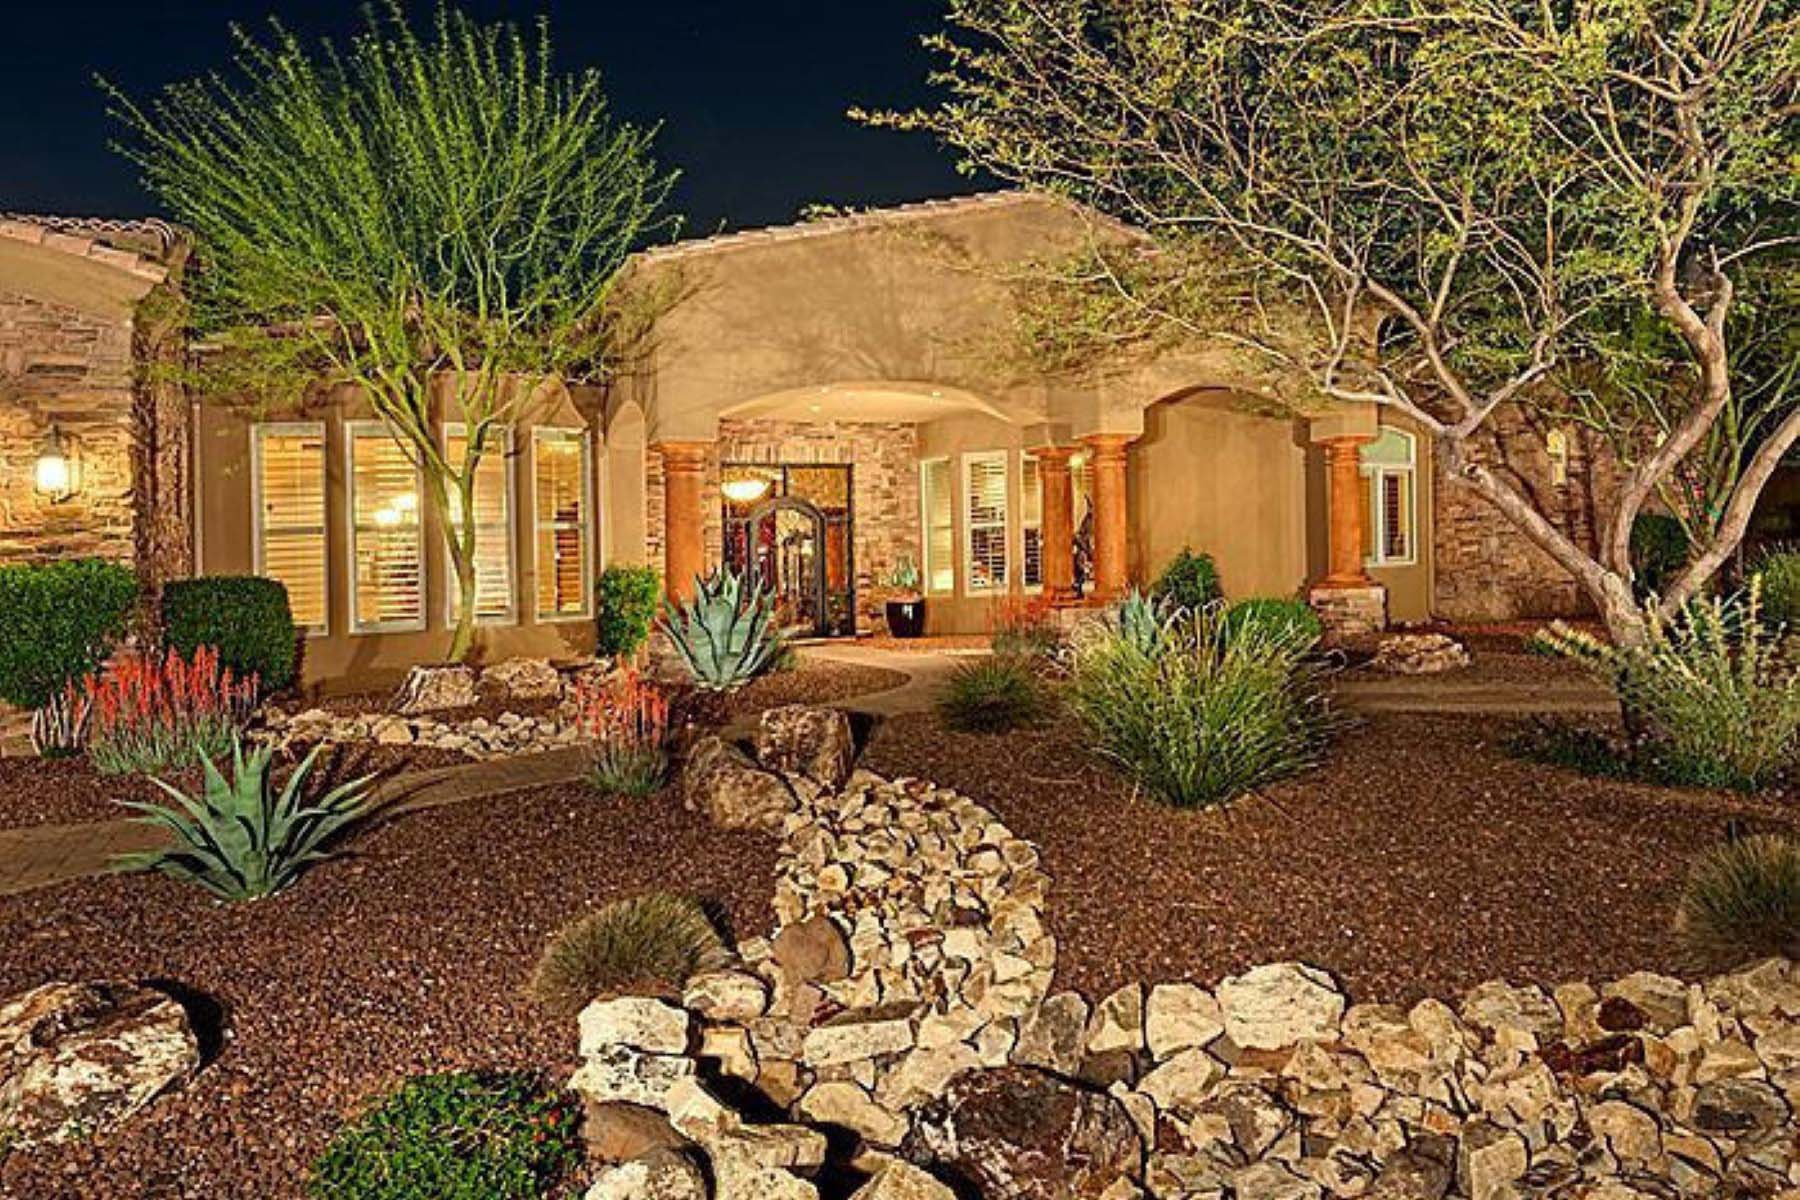 Villa per Vendita alle ore A Masterpiece Hand-built By Italian Craftsmen To Impeccable Standards. 8612 E Woodley Way Scottsdale, Arizona 85262 Stati Uniti